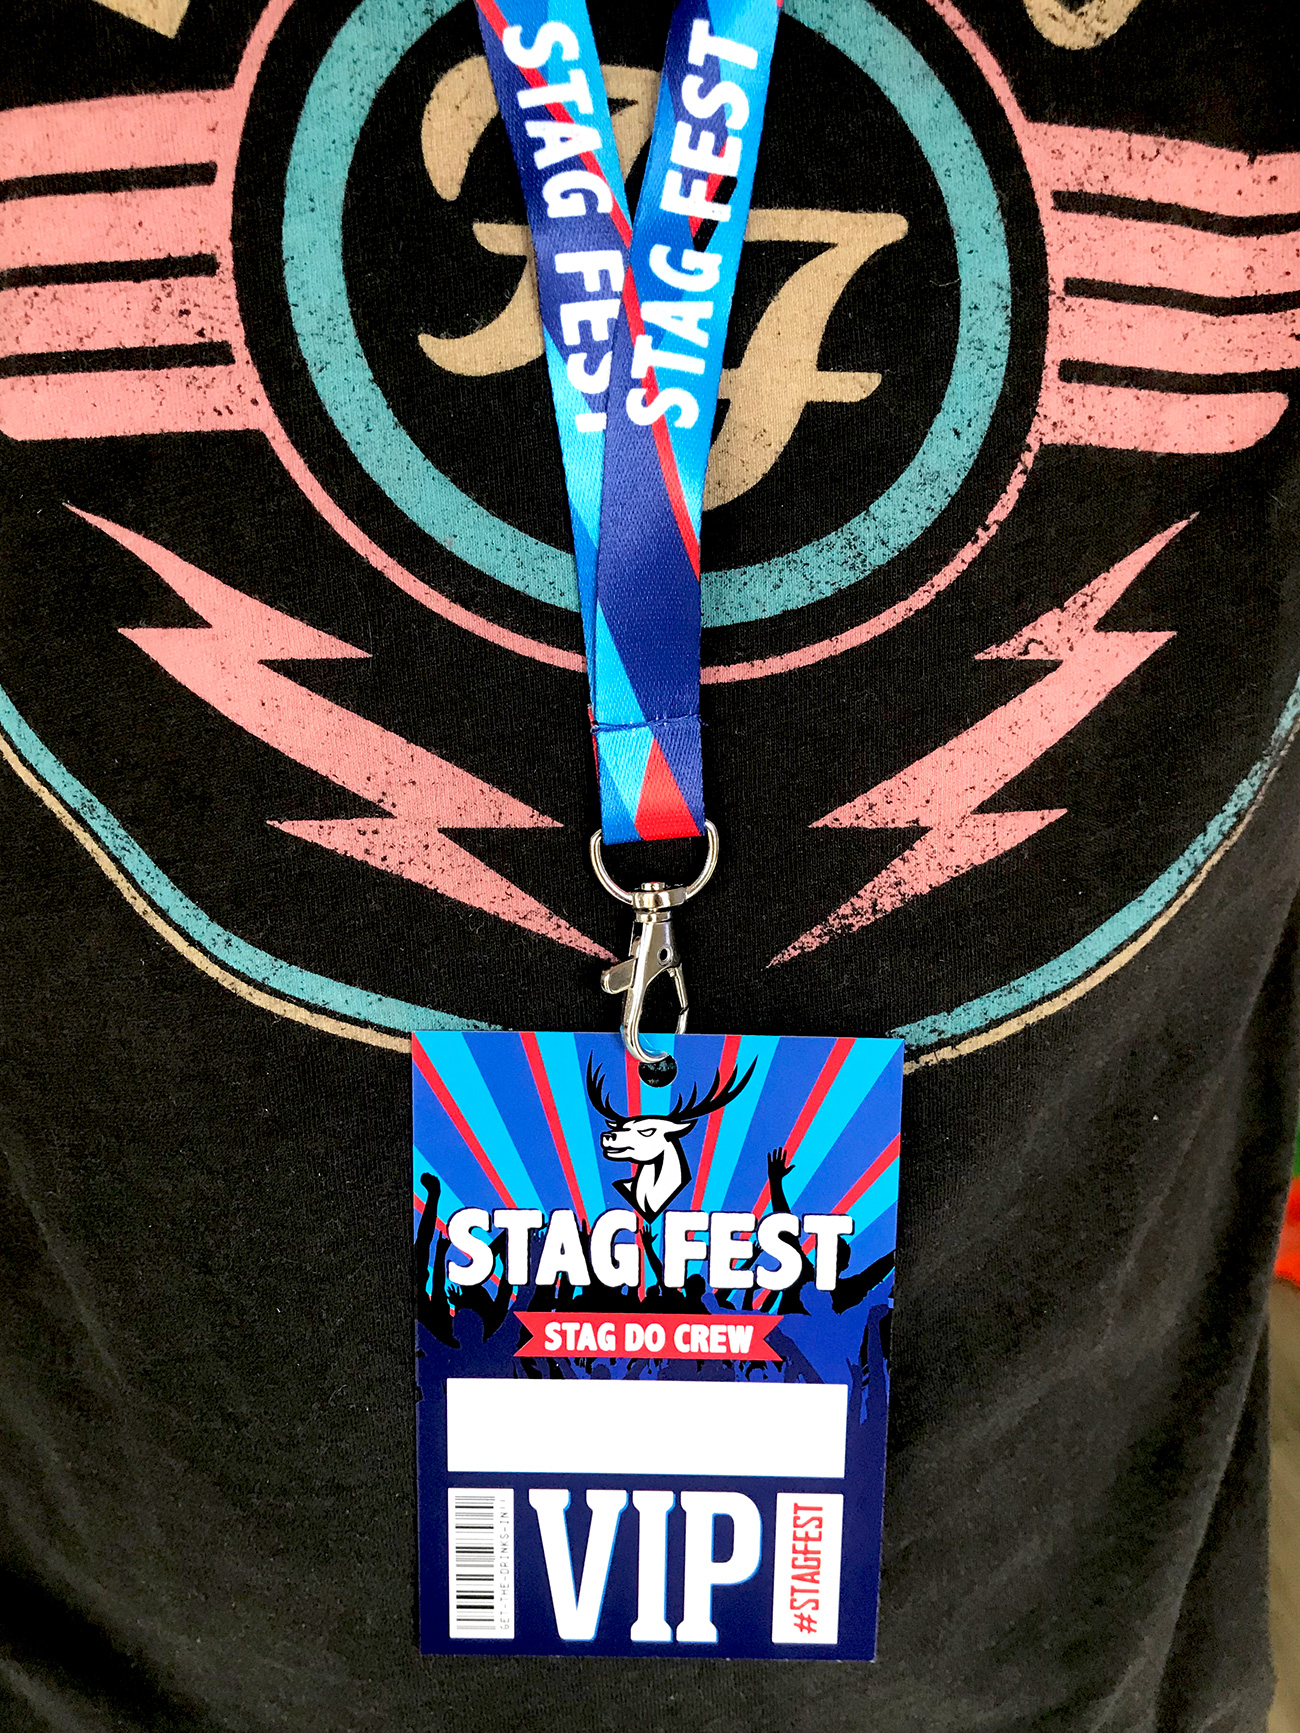 stag fest festival stag do party vip lanyards